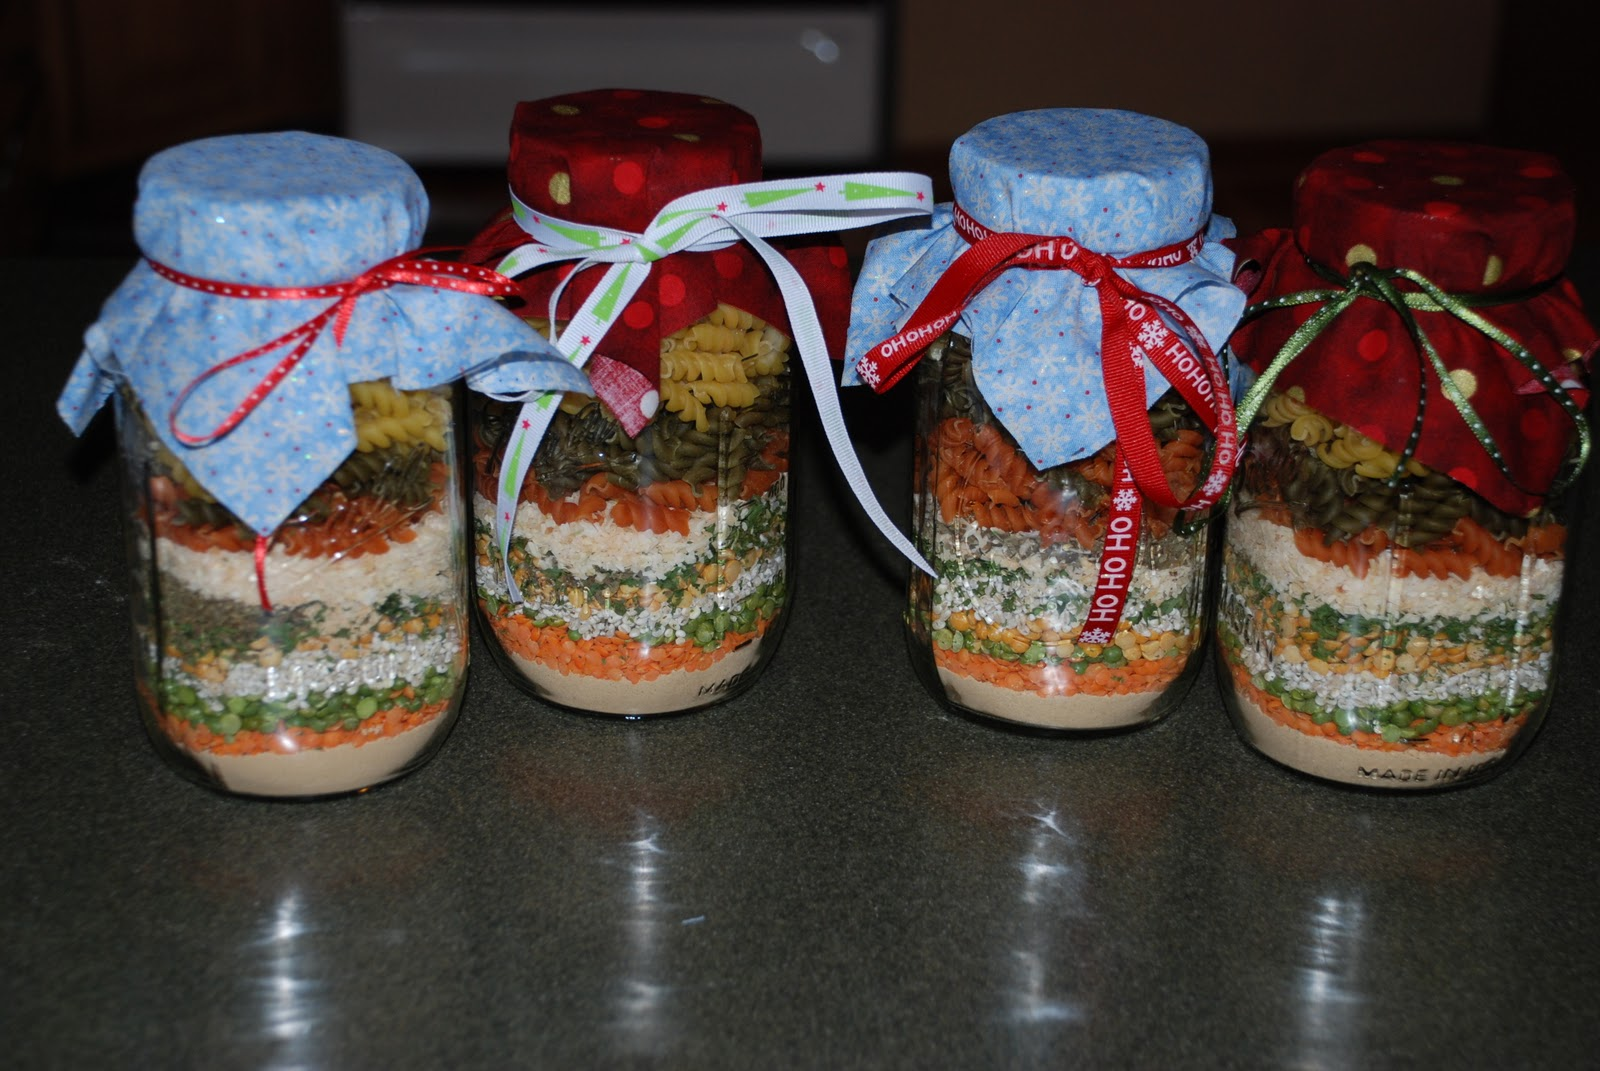 Being Frugal Sally: Gifts In A Jar